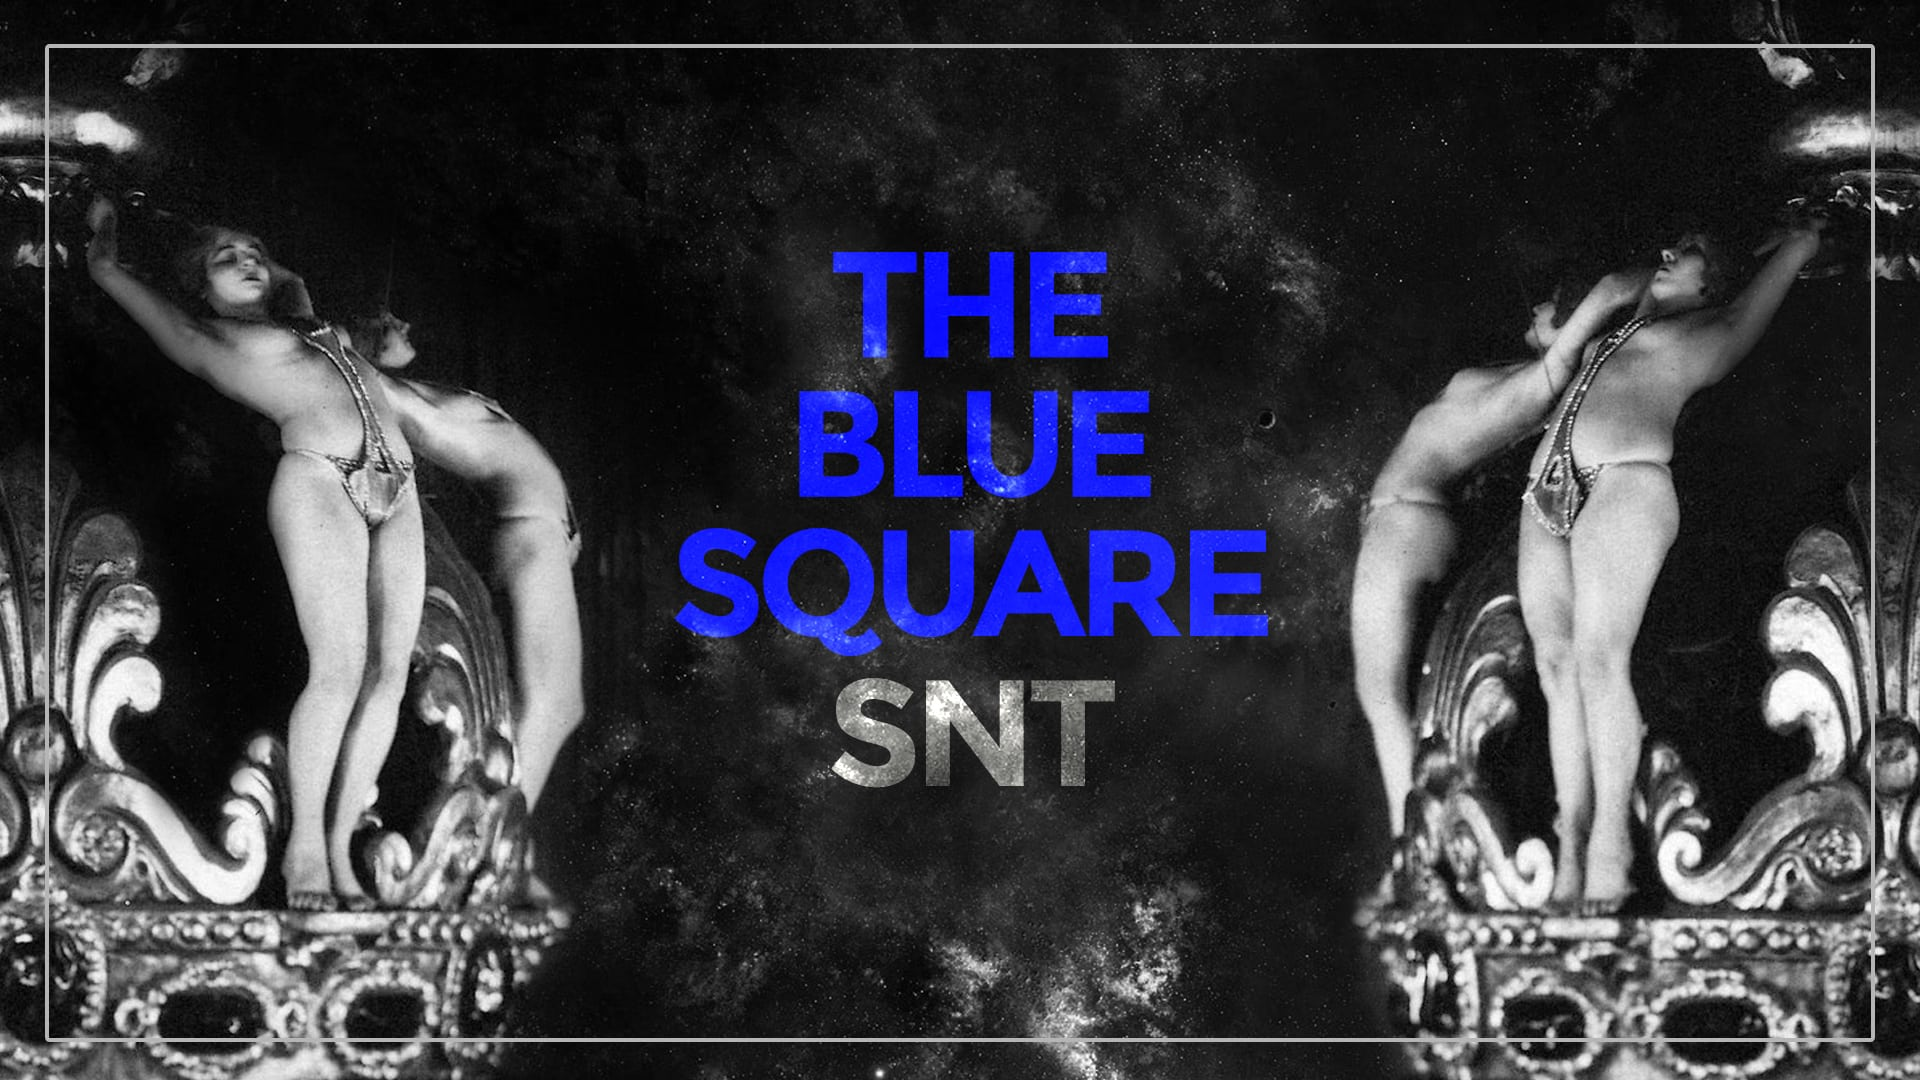 thebluesquare-snt-cover